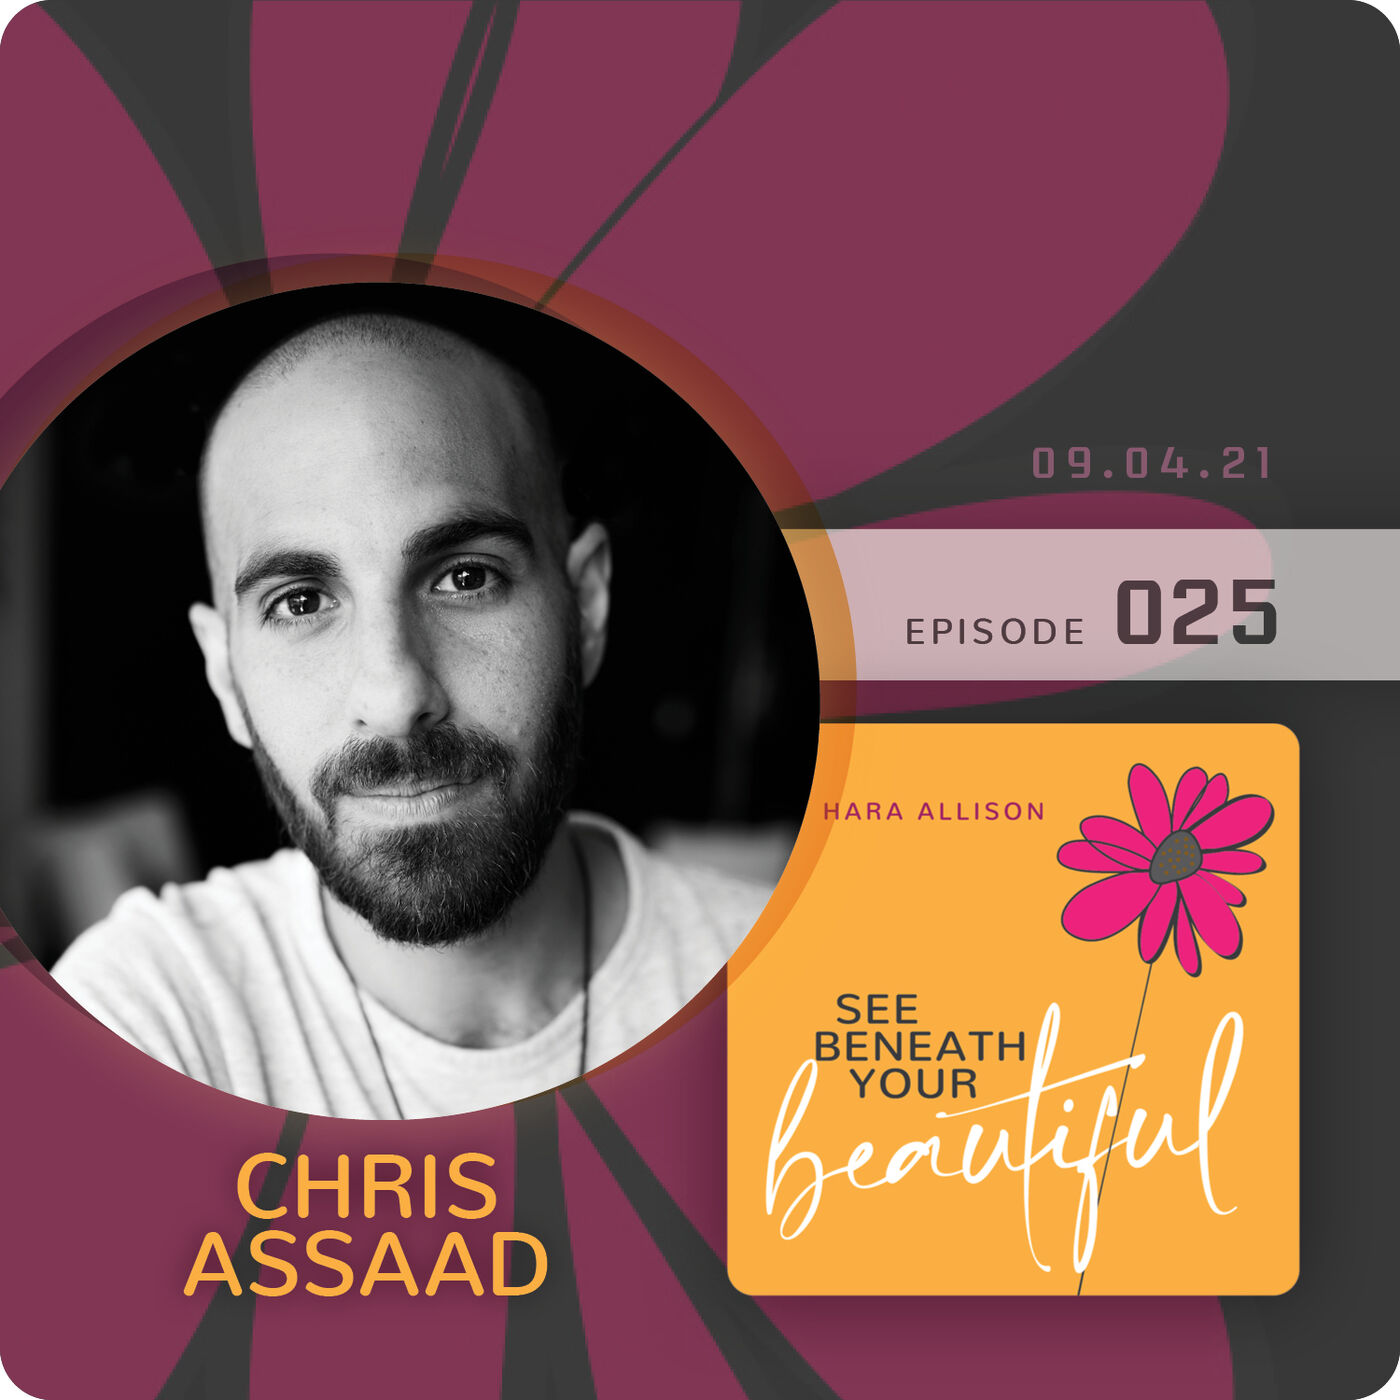 025. Chris Assaad discusses being an artist; inviting people to give themselves permission to use their voice and to let it flow; standing in his boldness; evolving through his art; and the importance of play